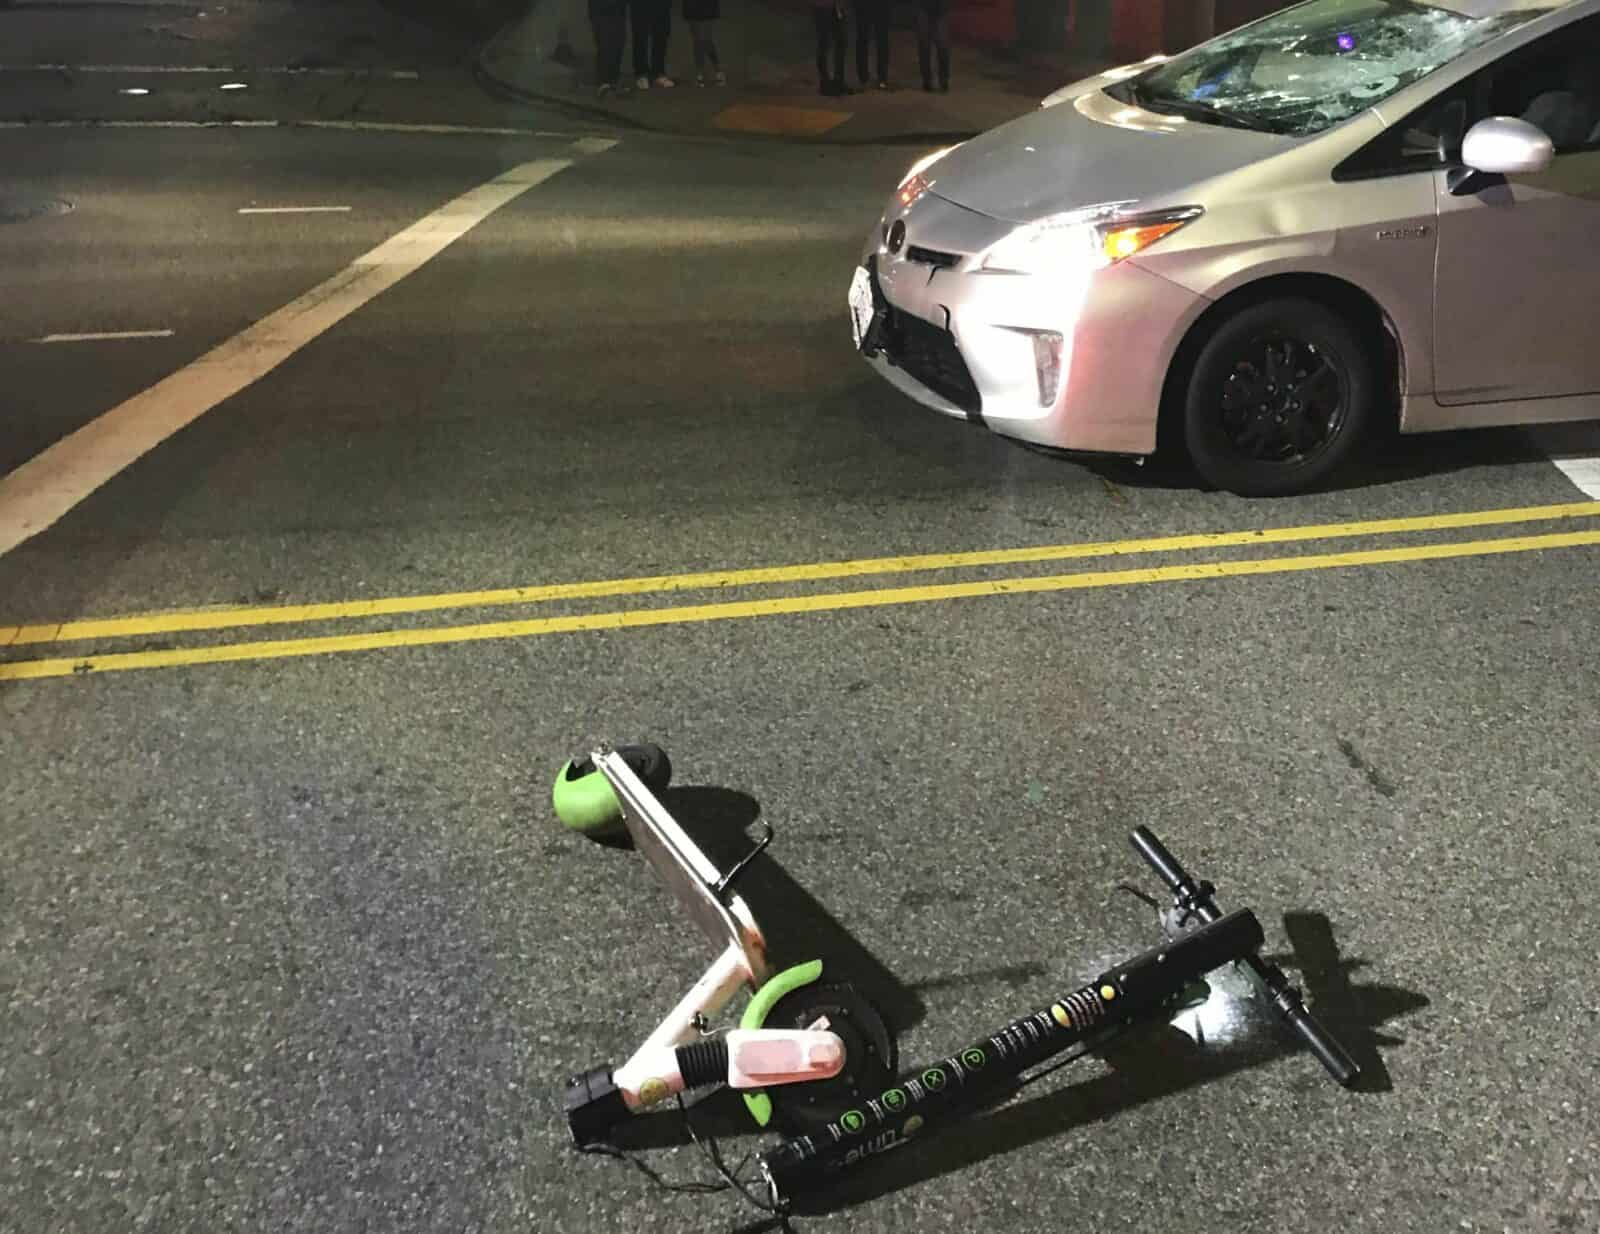 Boom in electric scooters leads to more injuries, fatalities